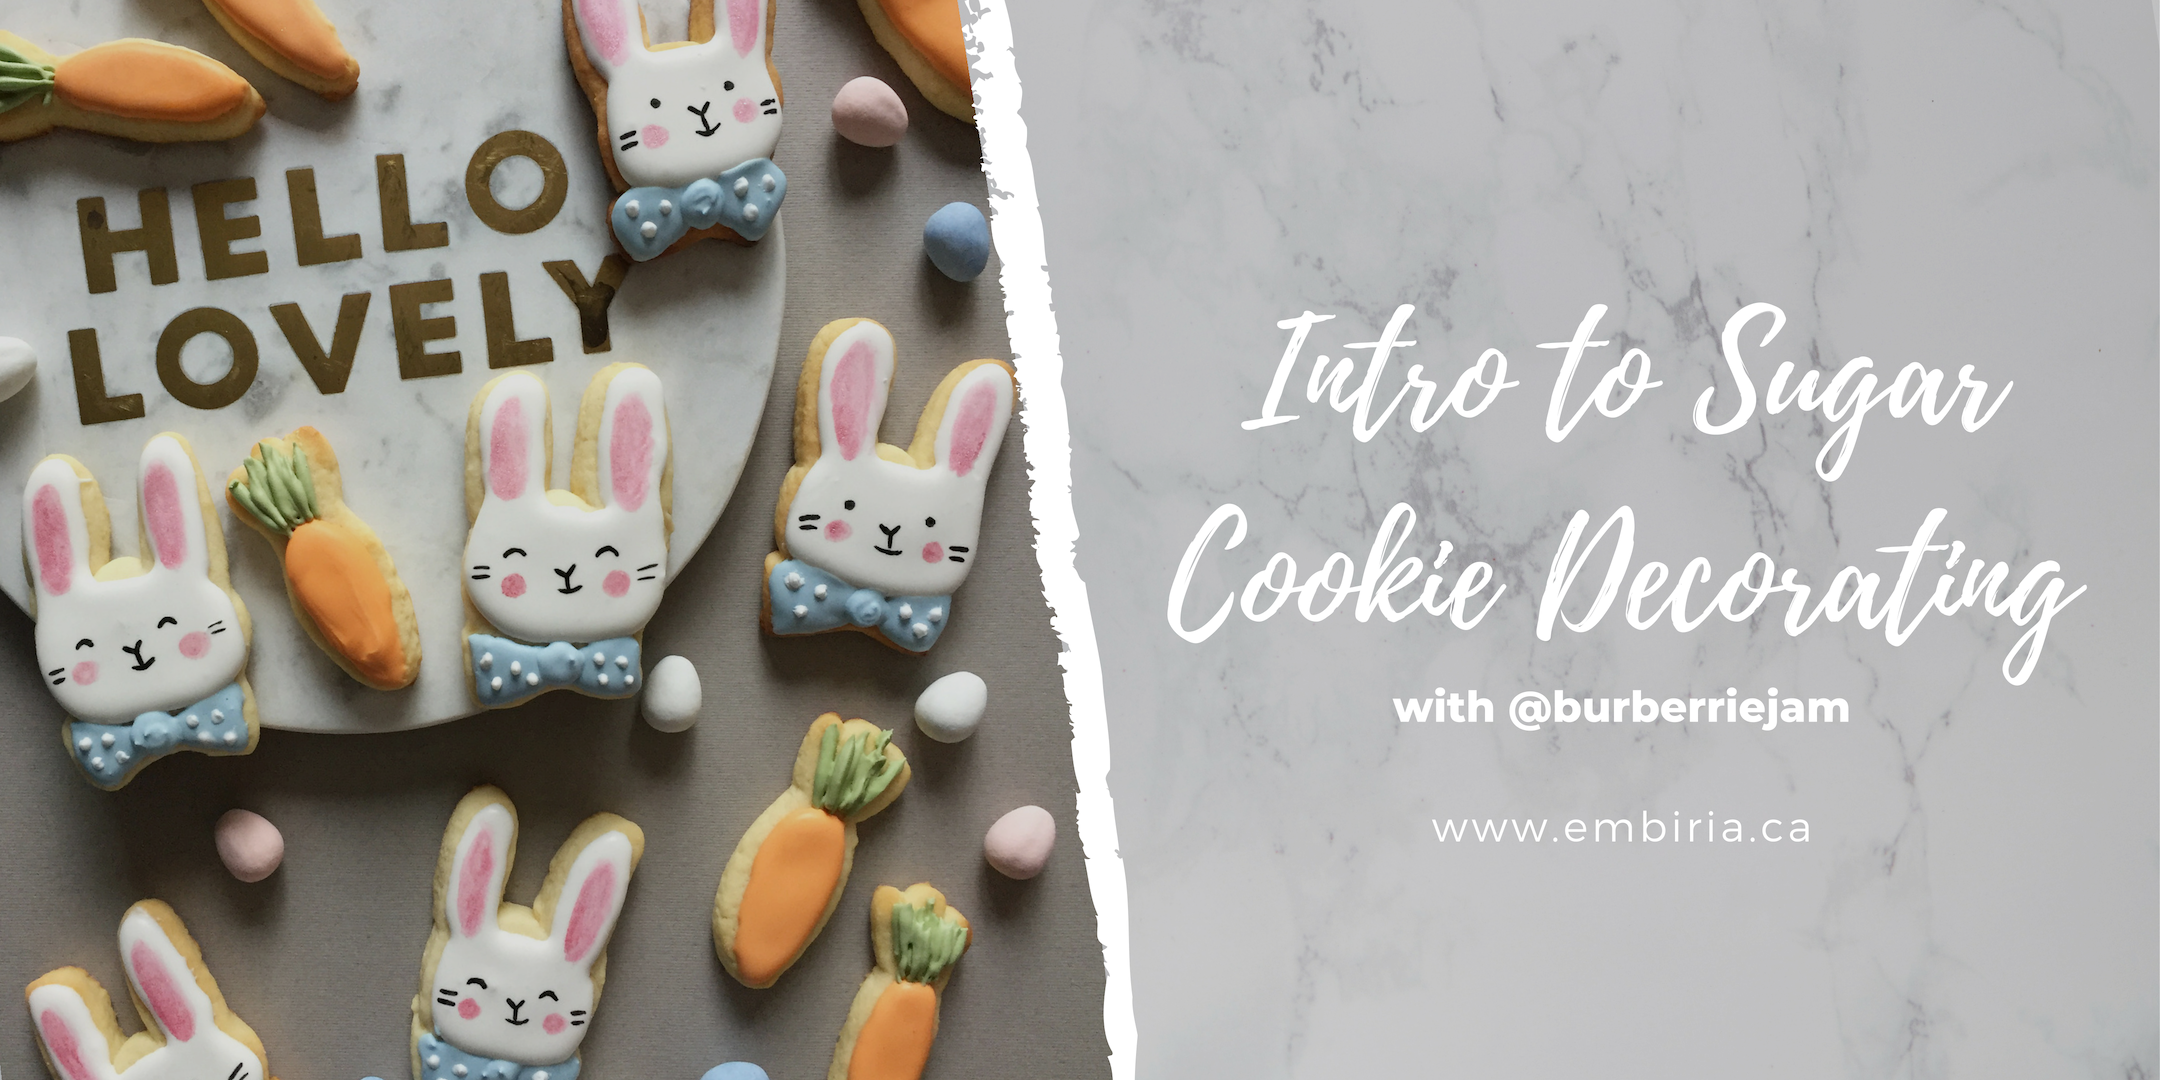 cookie-decorating-classes-toronto-embiria.png